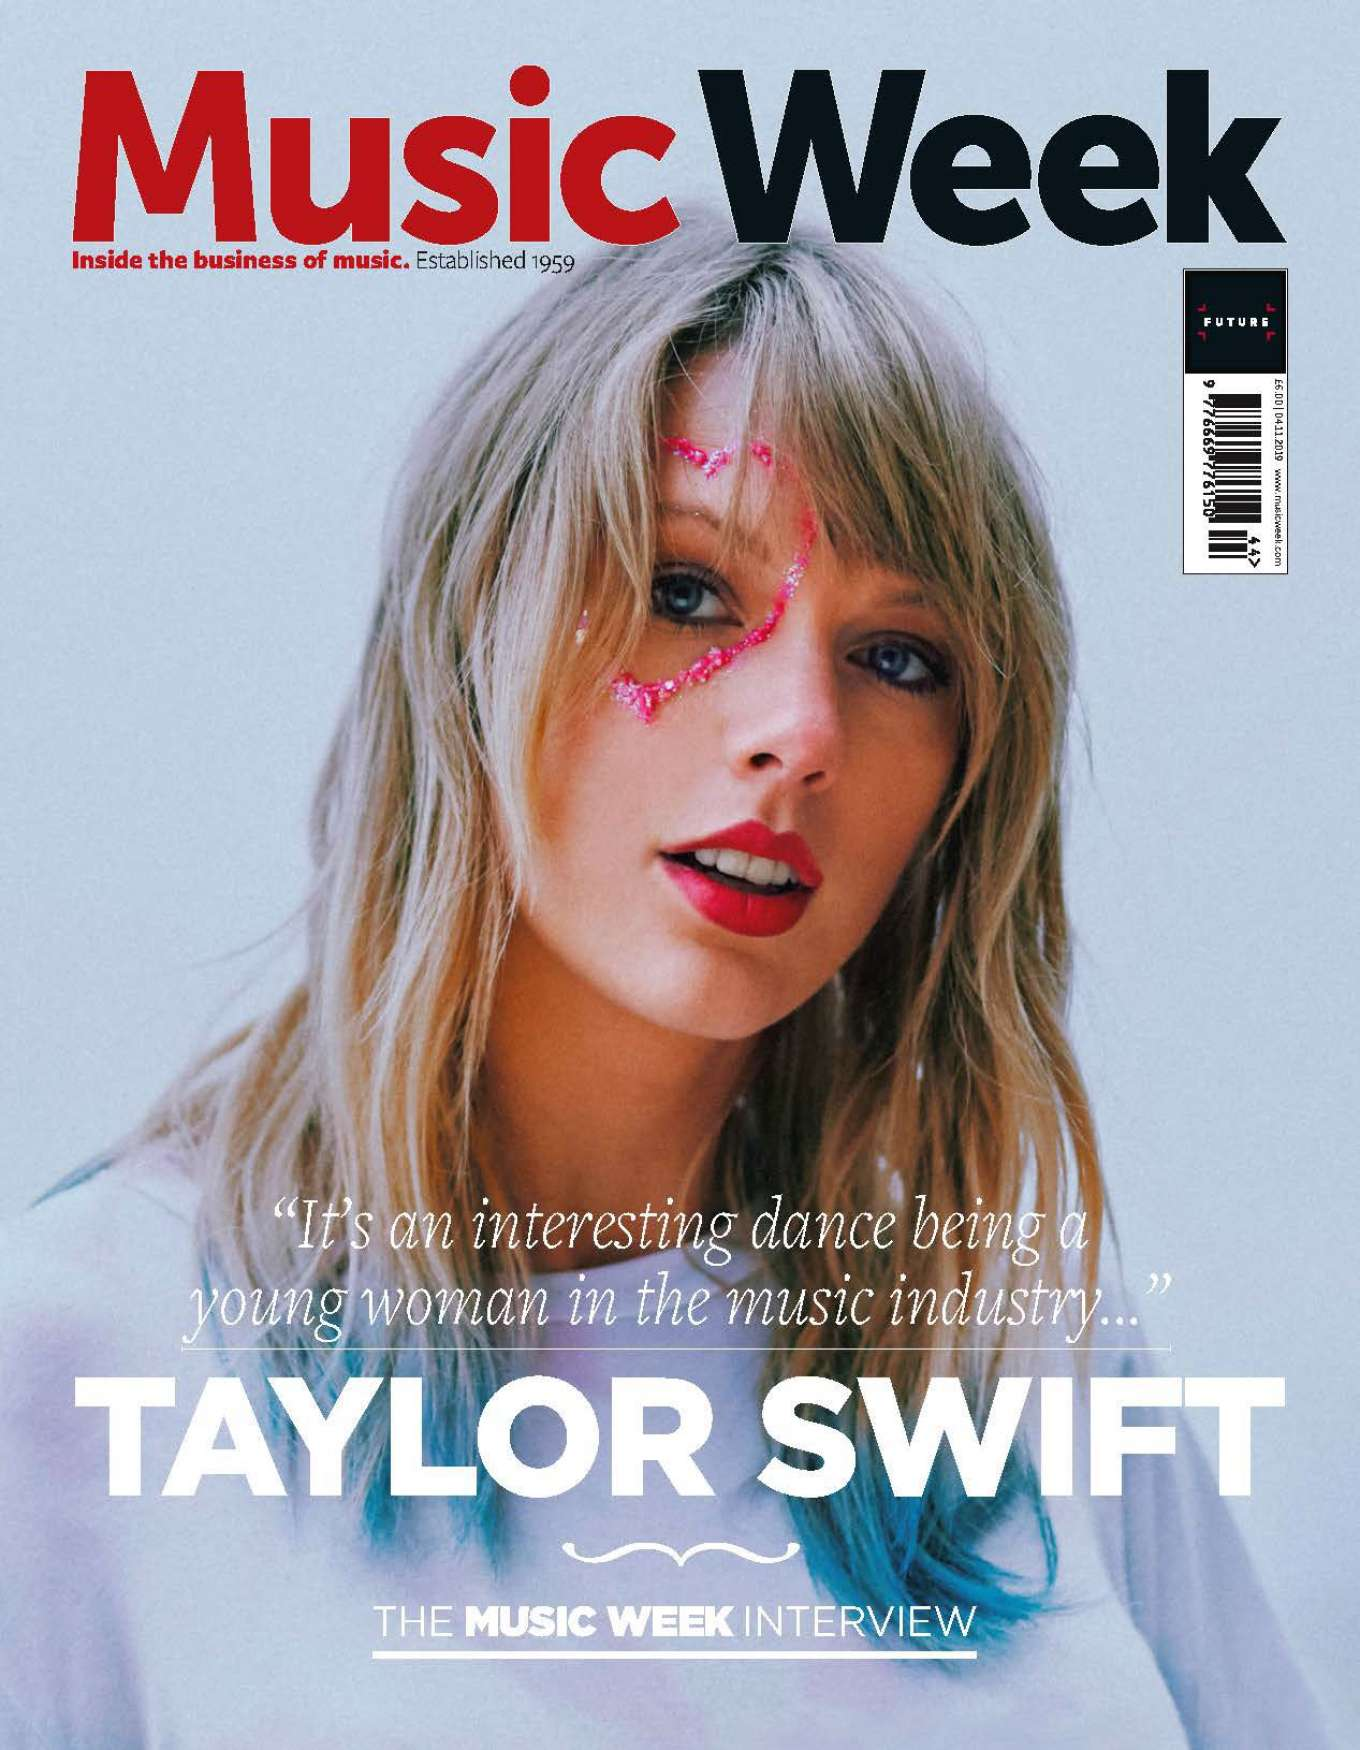 Taylor Swift for Music Week Cover (November 2019)